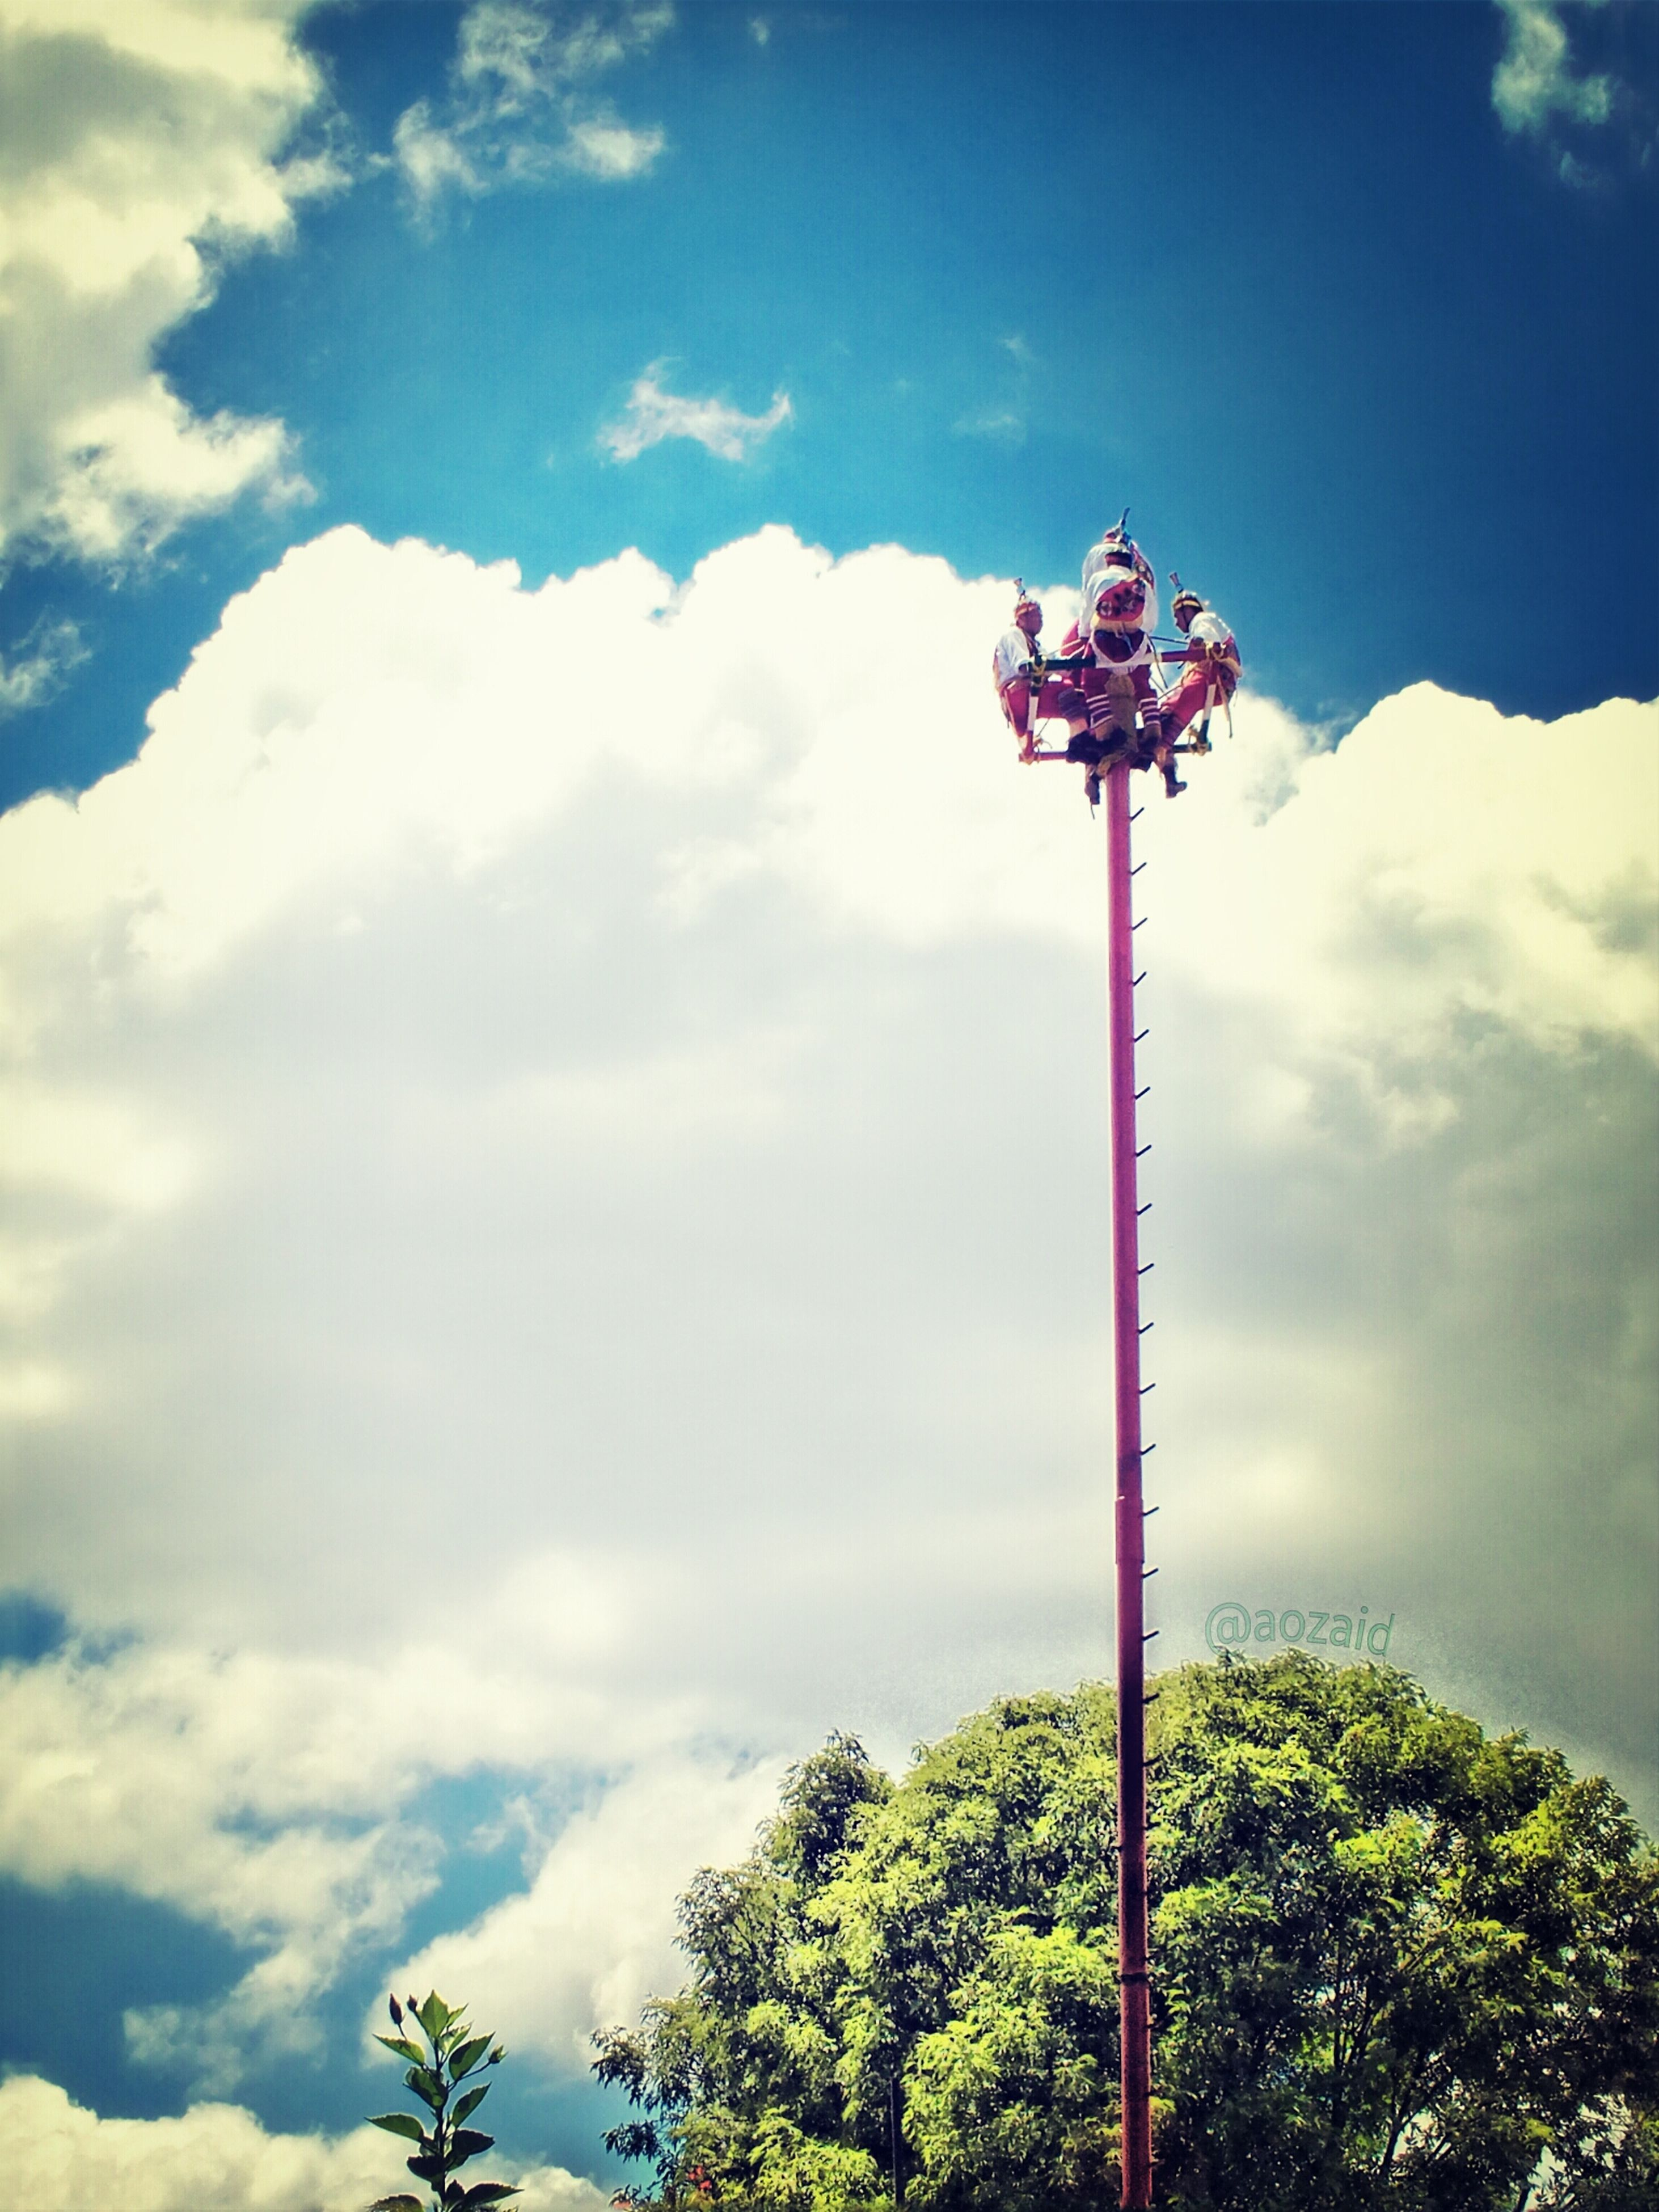 low angle view, sky, tree, cloud - sky, street light, cloud, cloudy, nature, lighting equipment, beauty in nature, tranquility, day, blue, pole, scenics, mountain, growth, outdoors, tranquil scene, no people